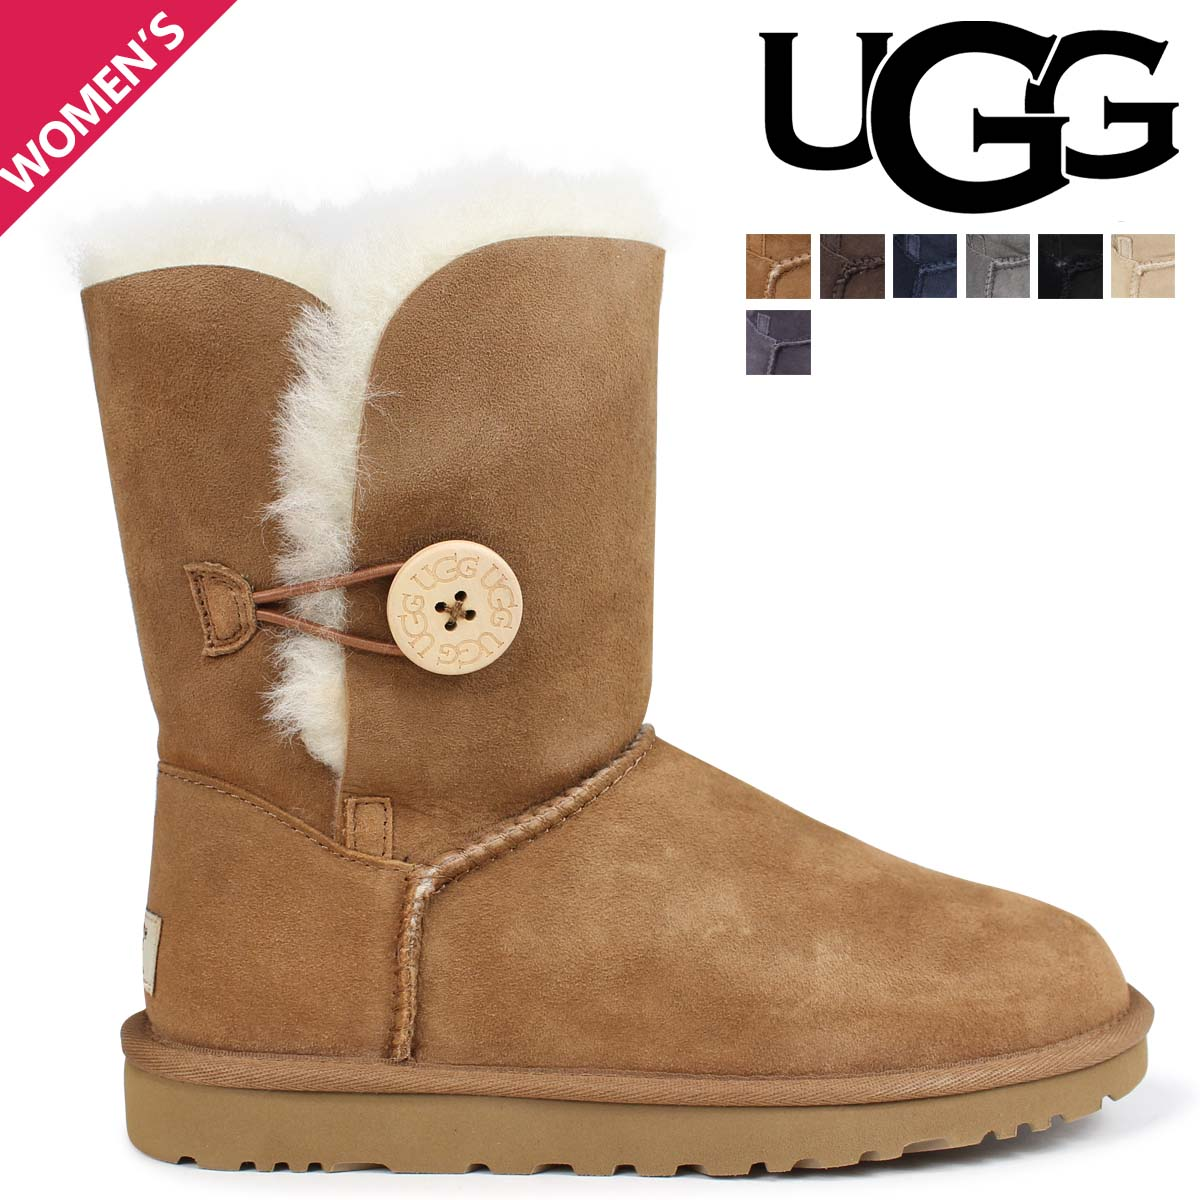 48c000b4f51 アグ UGG boots mouton boots Bailey button 2 Lady's Bailey button 2 5803  1016226 WOMENS BAILEY BUTTON II